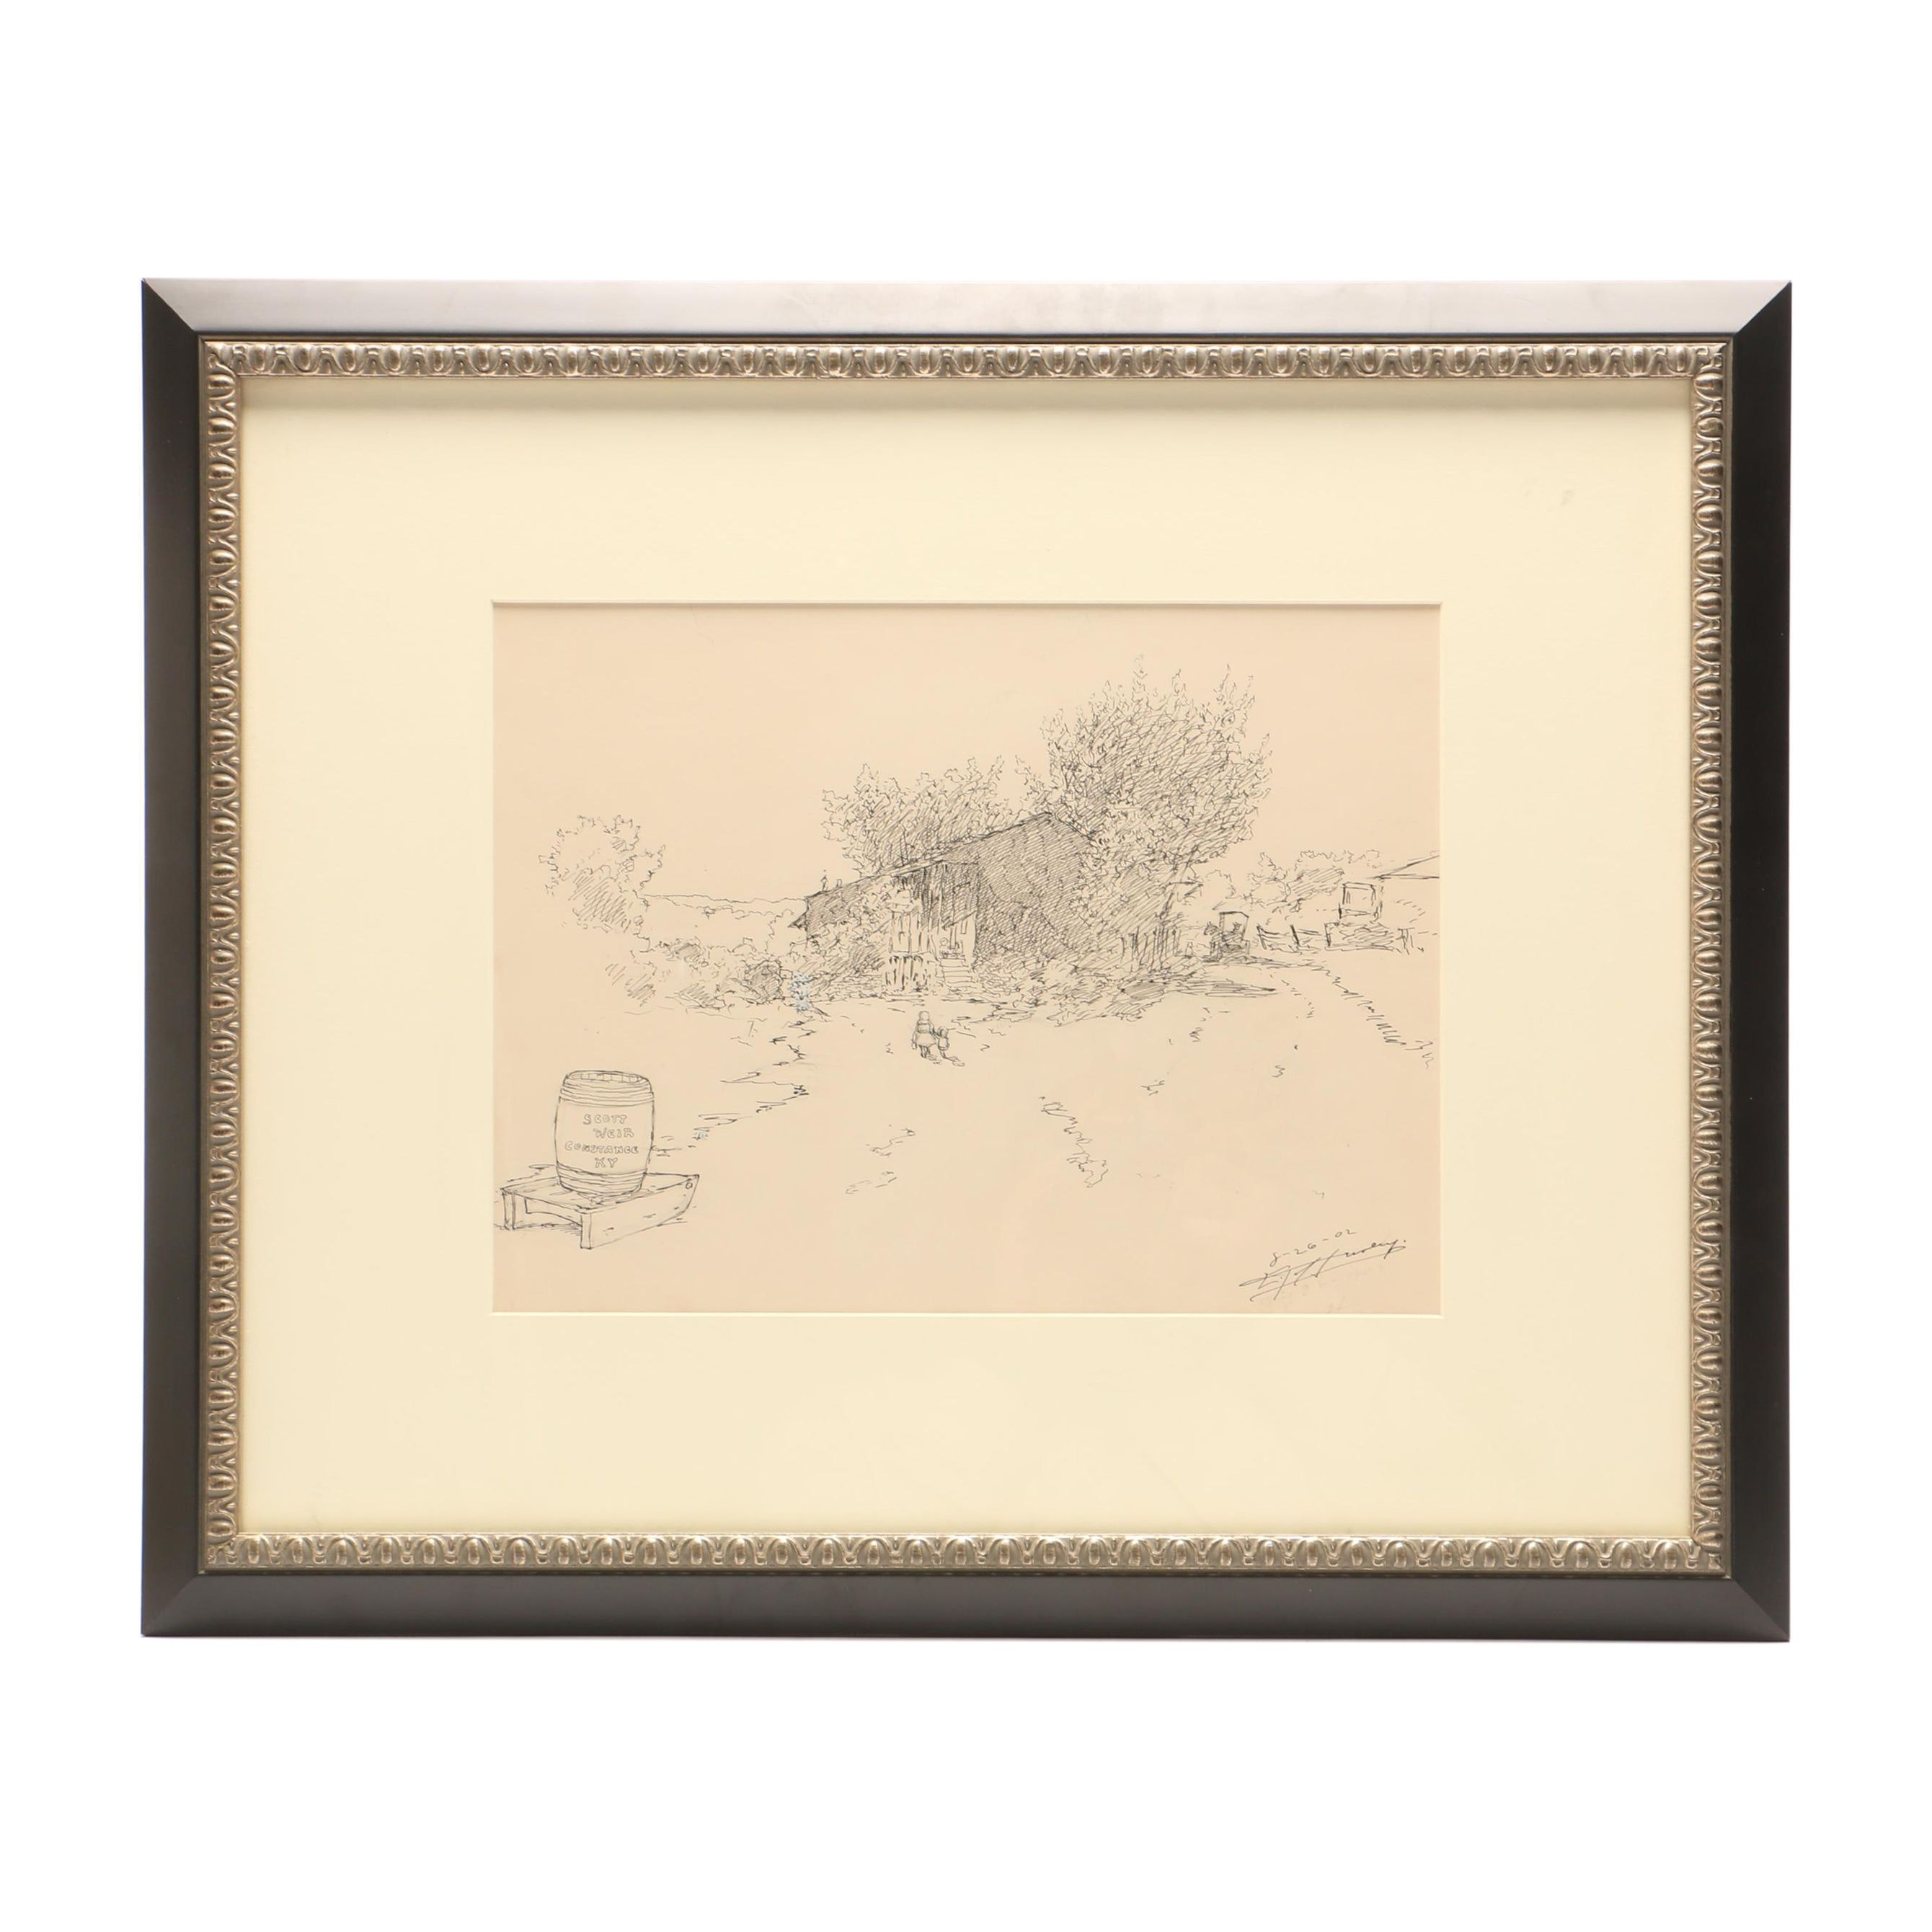 Edward T. Hurley Ink and Graphite Drawing of Scott Weir Constance KY